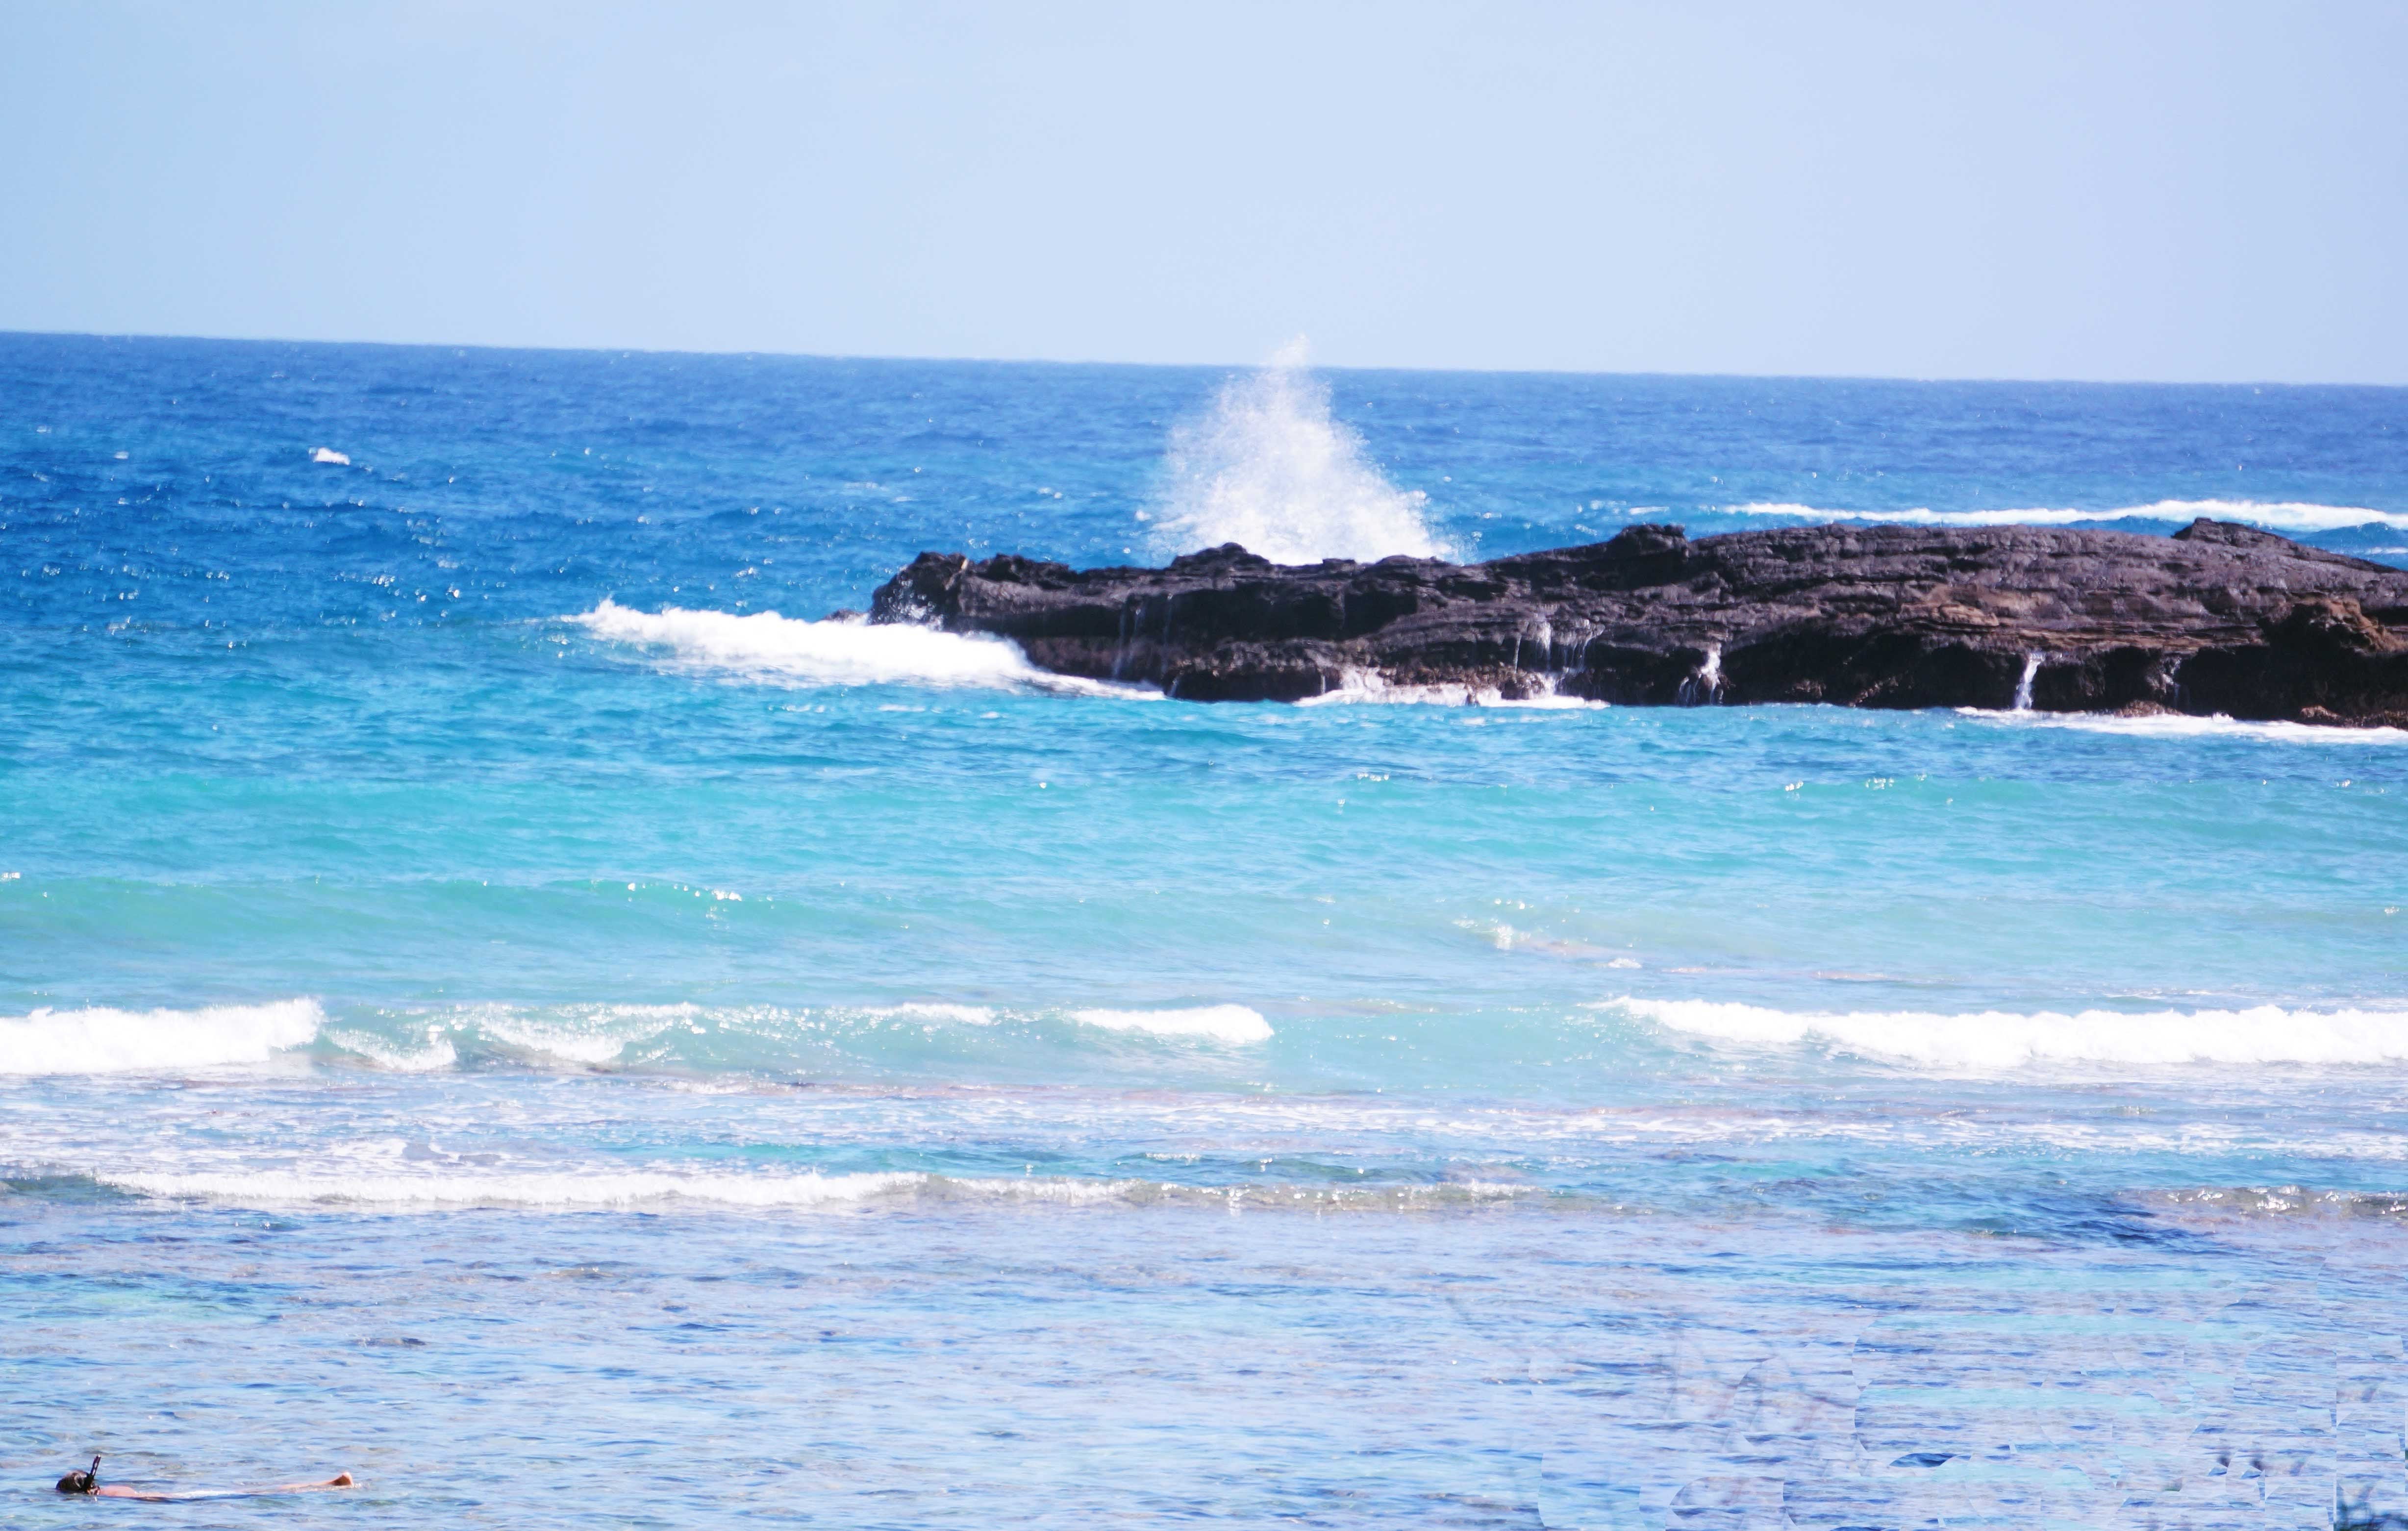 Waves-Crashing-hanauma-bay